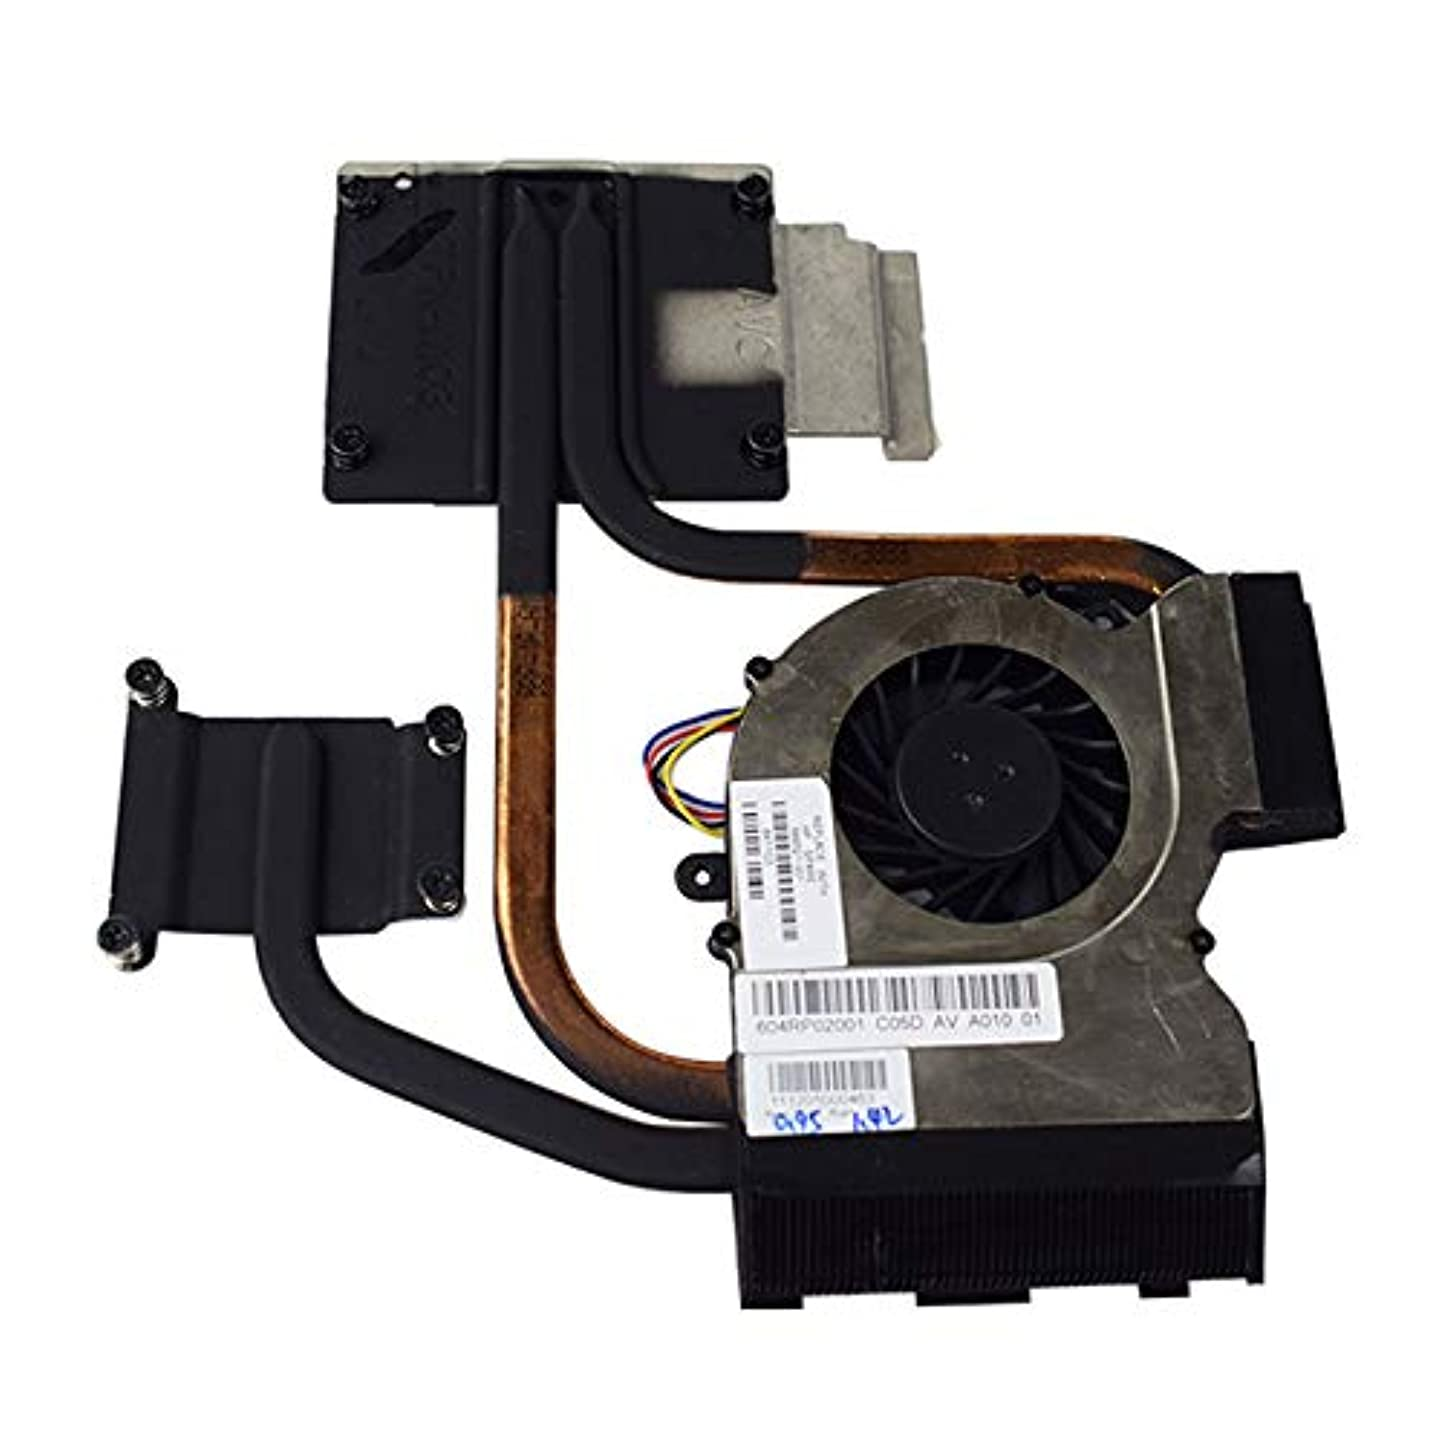 Rangale New CPU Cooling Fan with Heatsink for HP Pavilion dv7-6000 DV7-6100 DV7-6123CL DV7-6135DX DV7-6143CL DV7-6143NR DV7-6163NR DV7-6163US DV7-6164NR DV7-6165US DV7-6169NR DV7-6187CL DV7-6188CA DV7-6197CA series laptop. (Fit for Intel processor only)